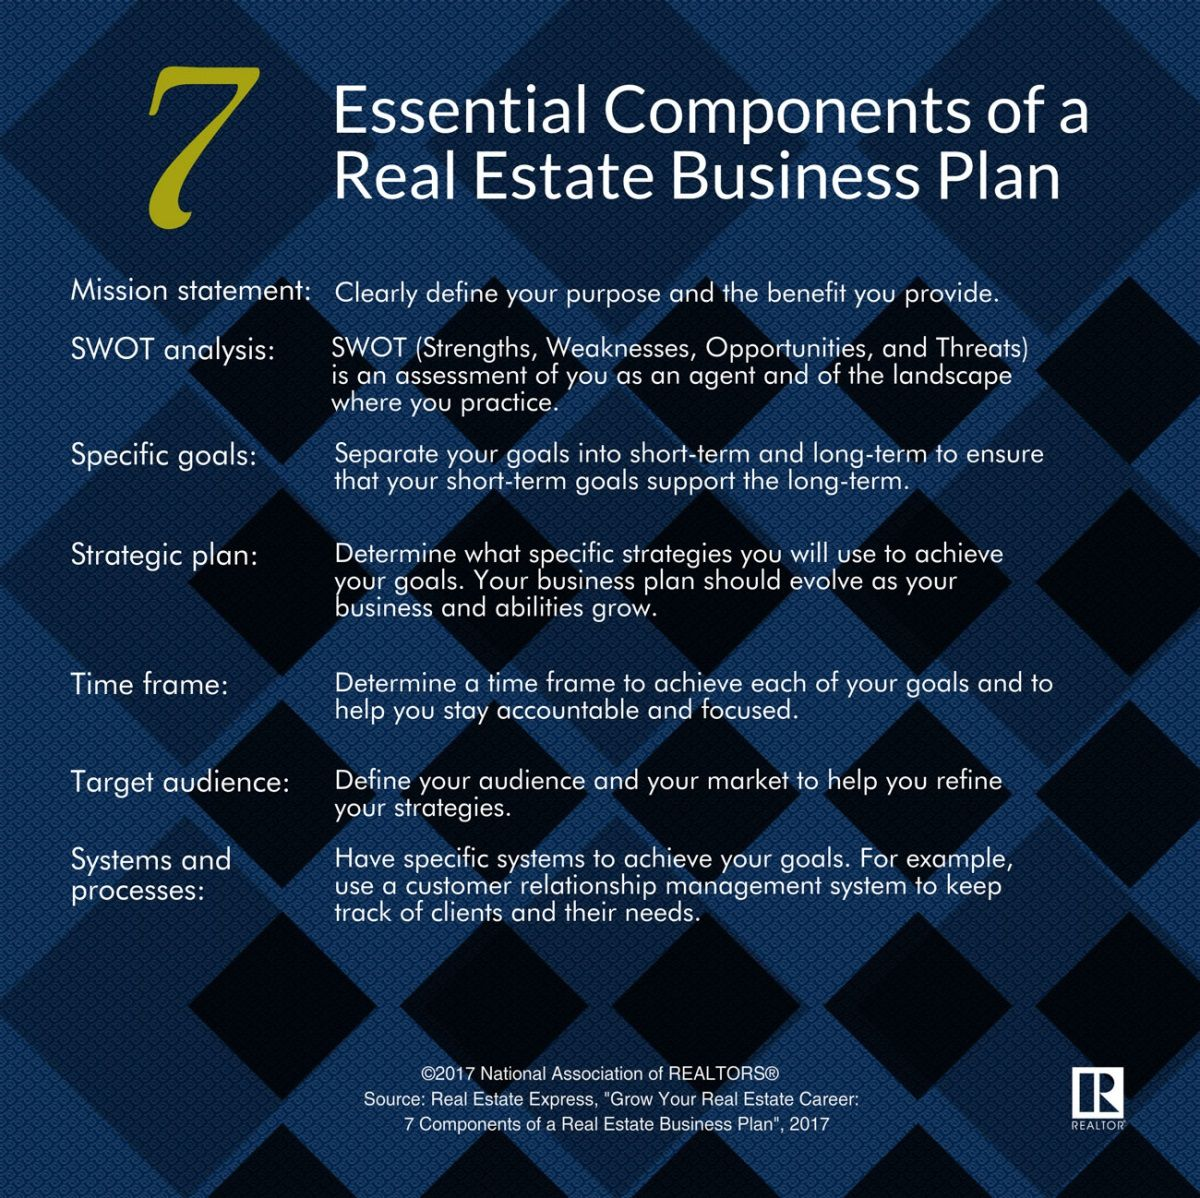 009 Rare Real Estate Busines Plan Template High Resolution  Free Download Investing Pdf Company ExampleFull